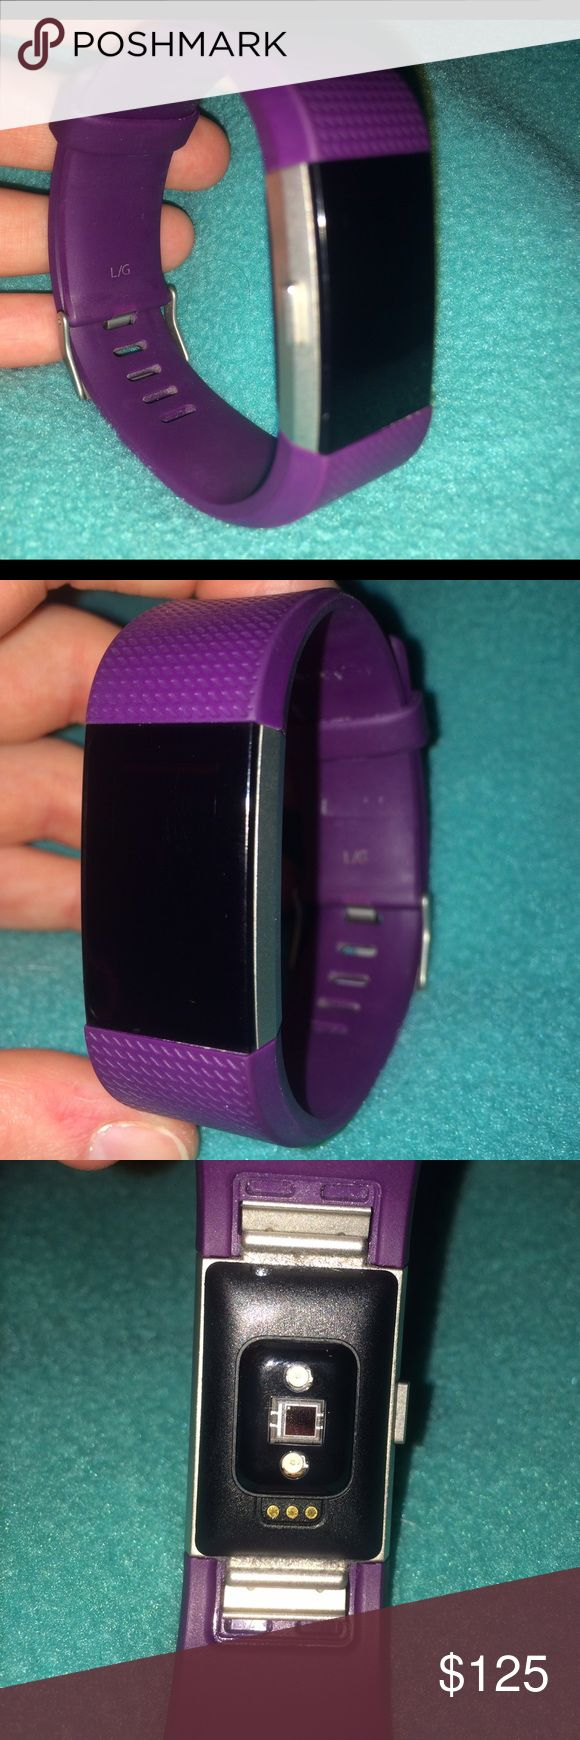 Fitbit Charge HR 2 This Fitbit charge HR 2 is like new. I bought it and wore it only three times (and all I did was walk around nothing heavy). It comes with the charger and that works as if it was new as well. The band is a size large, but the bands can be interchanged if you buy the others types, styles, and sizes. It's really cute and allows you to track your fitness! It even connects to your smartphone via the Fitbit app. fitbit Jewelry Bracelets